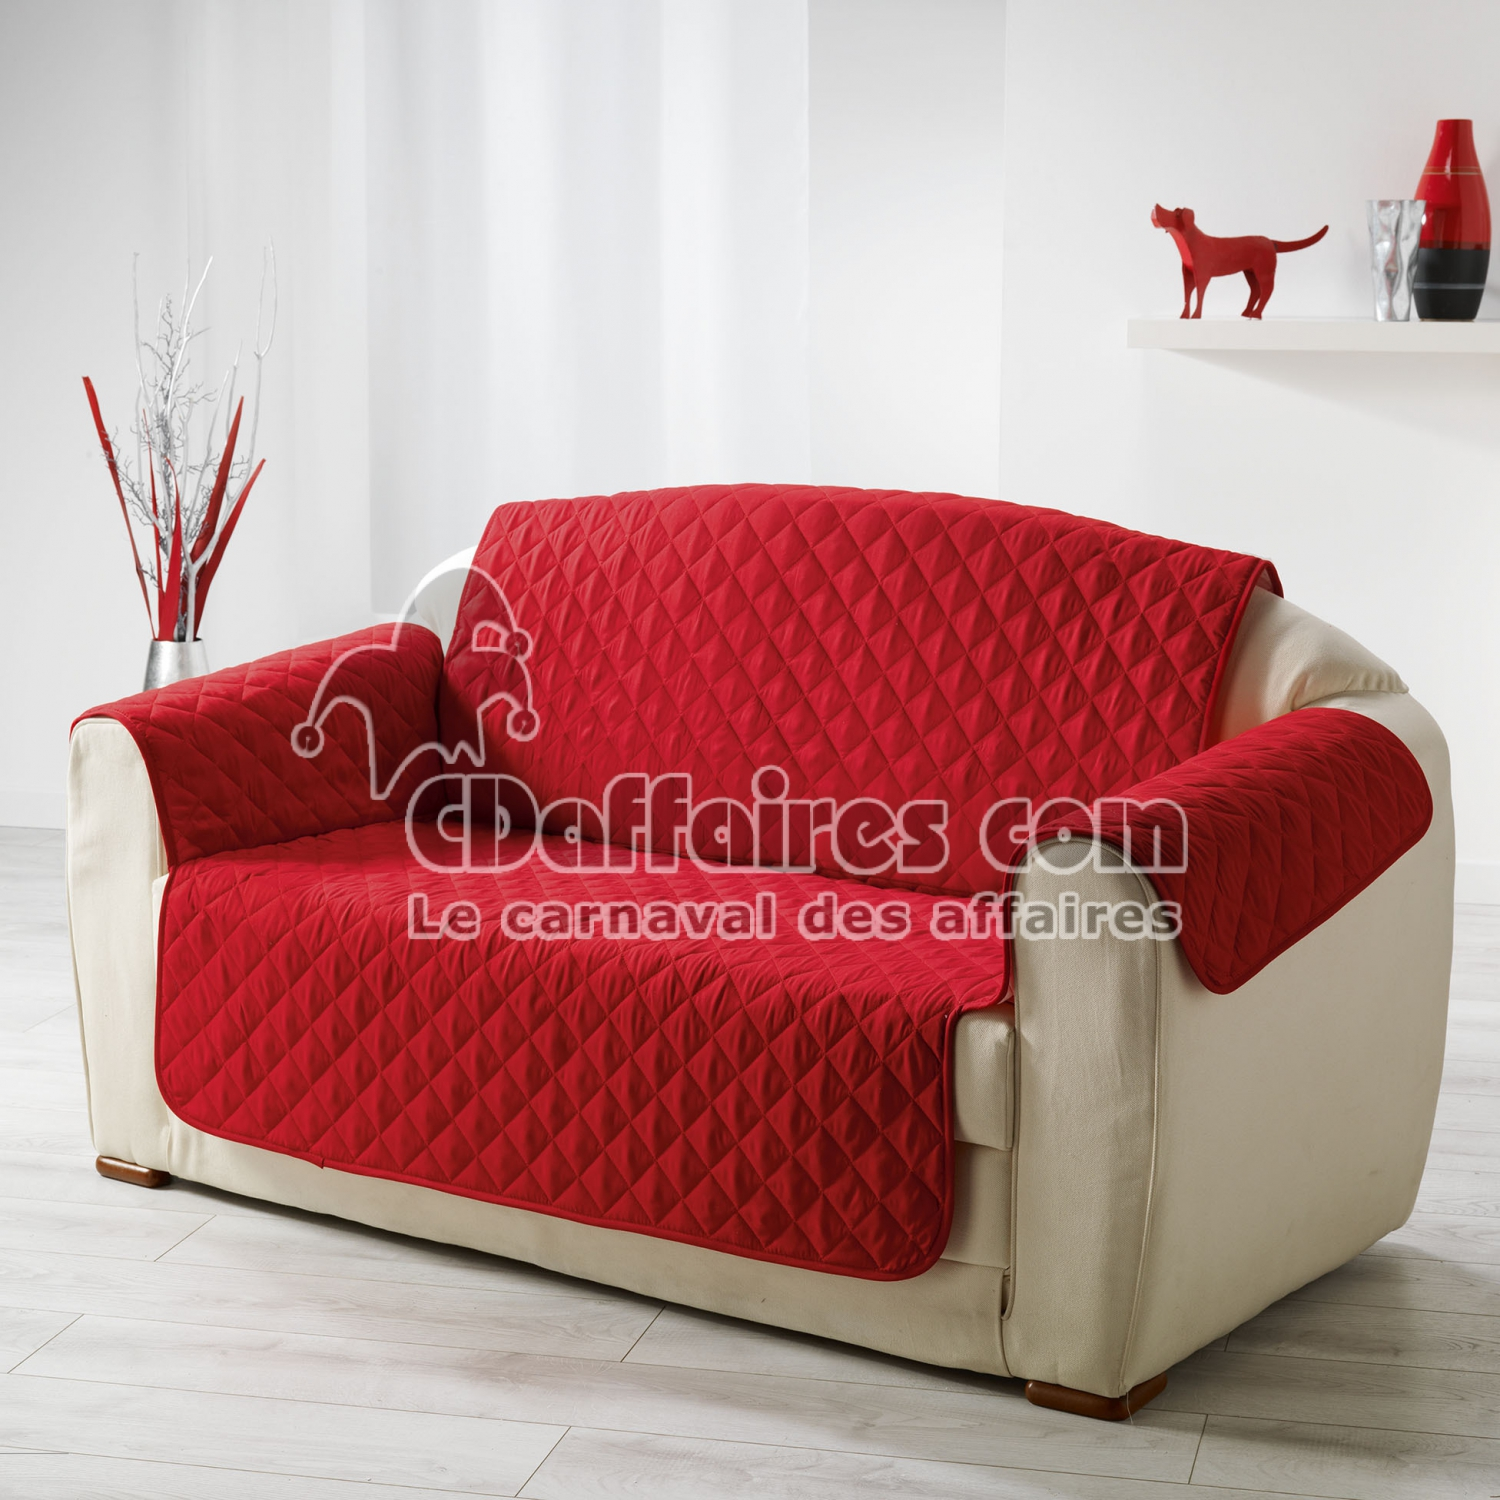 protege canape matelasse 279 x 179 cm microfibre unie club rouge cdaffaires. Black Bedroom Furniture Sets. Home Design Ideas